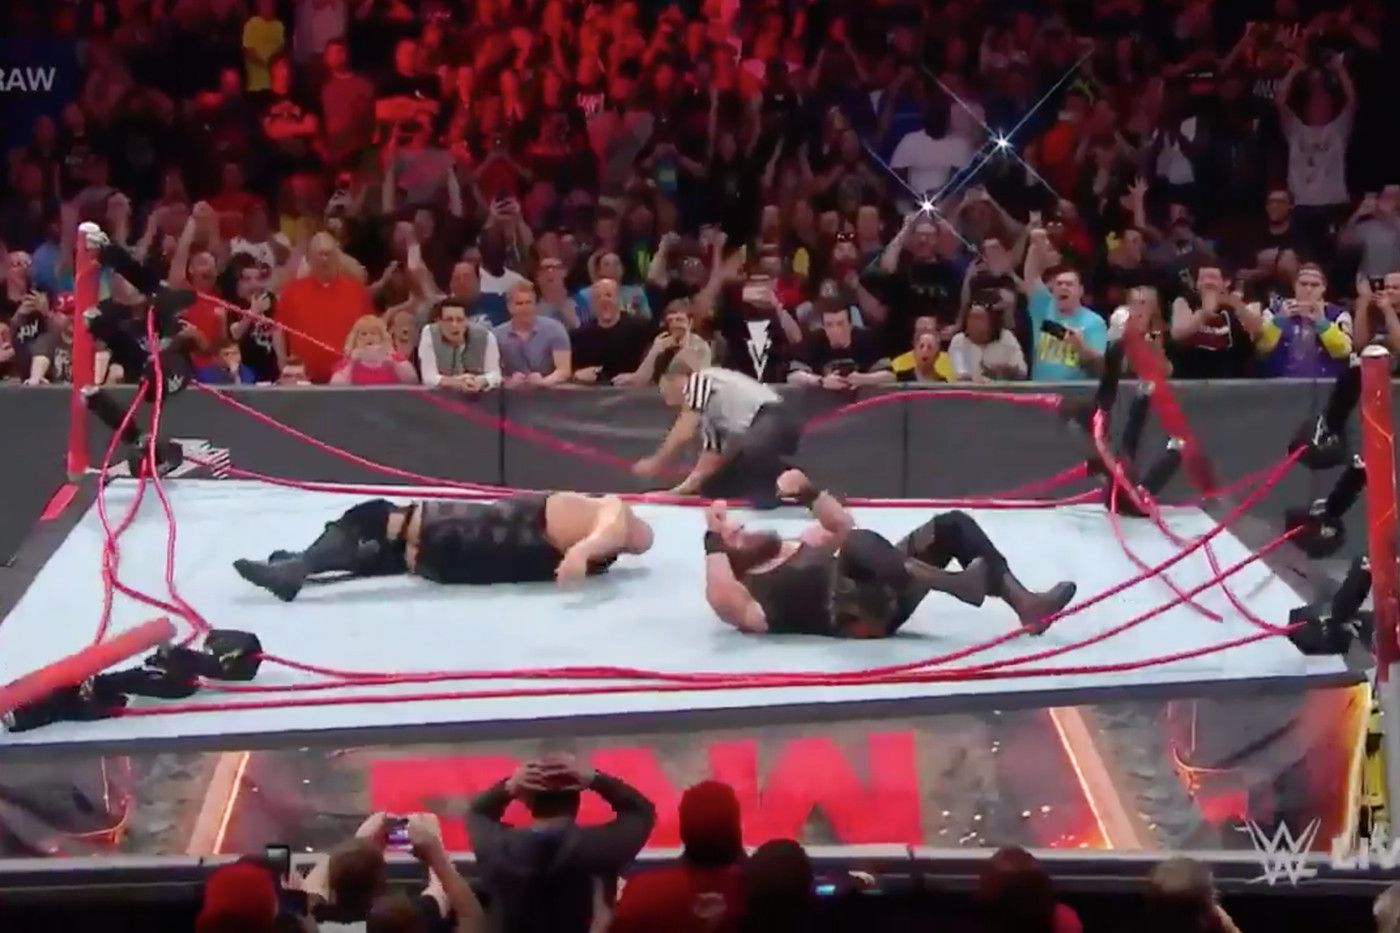 Wwe S Ring Collapsed When Two Wrestlers Went Falling From The Middle Rope Wwe Ring Rings Collapse